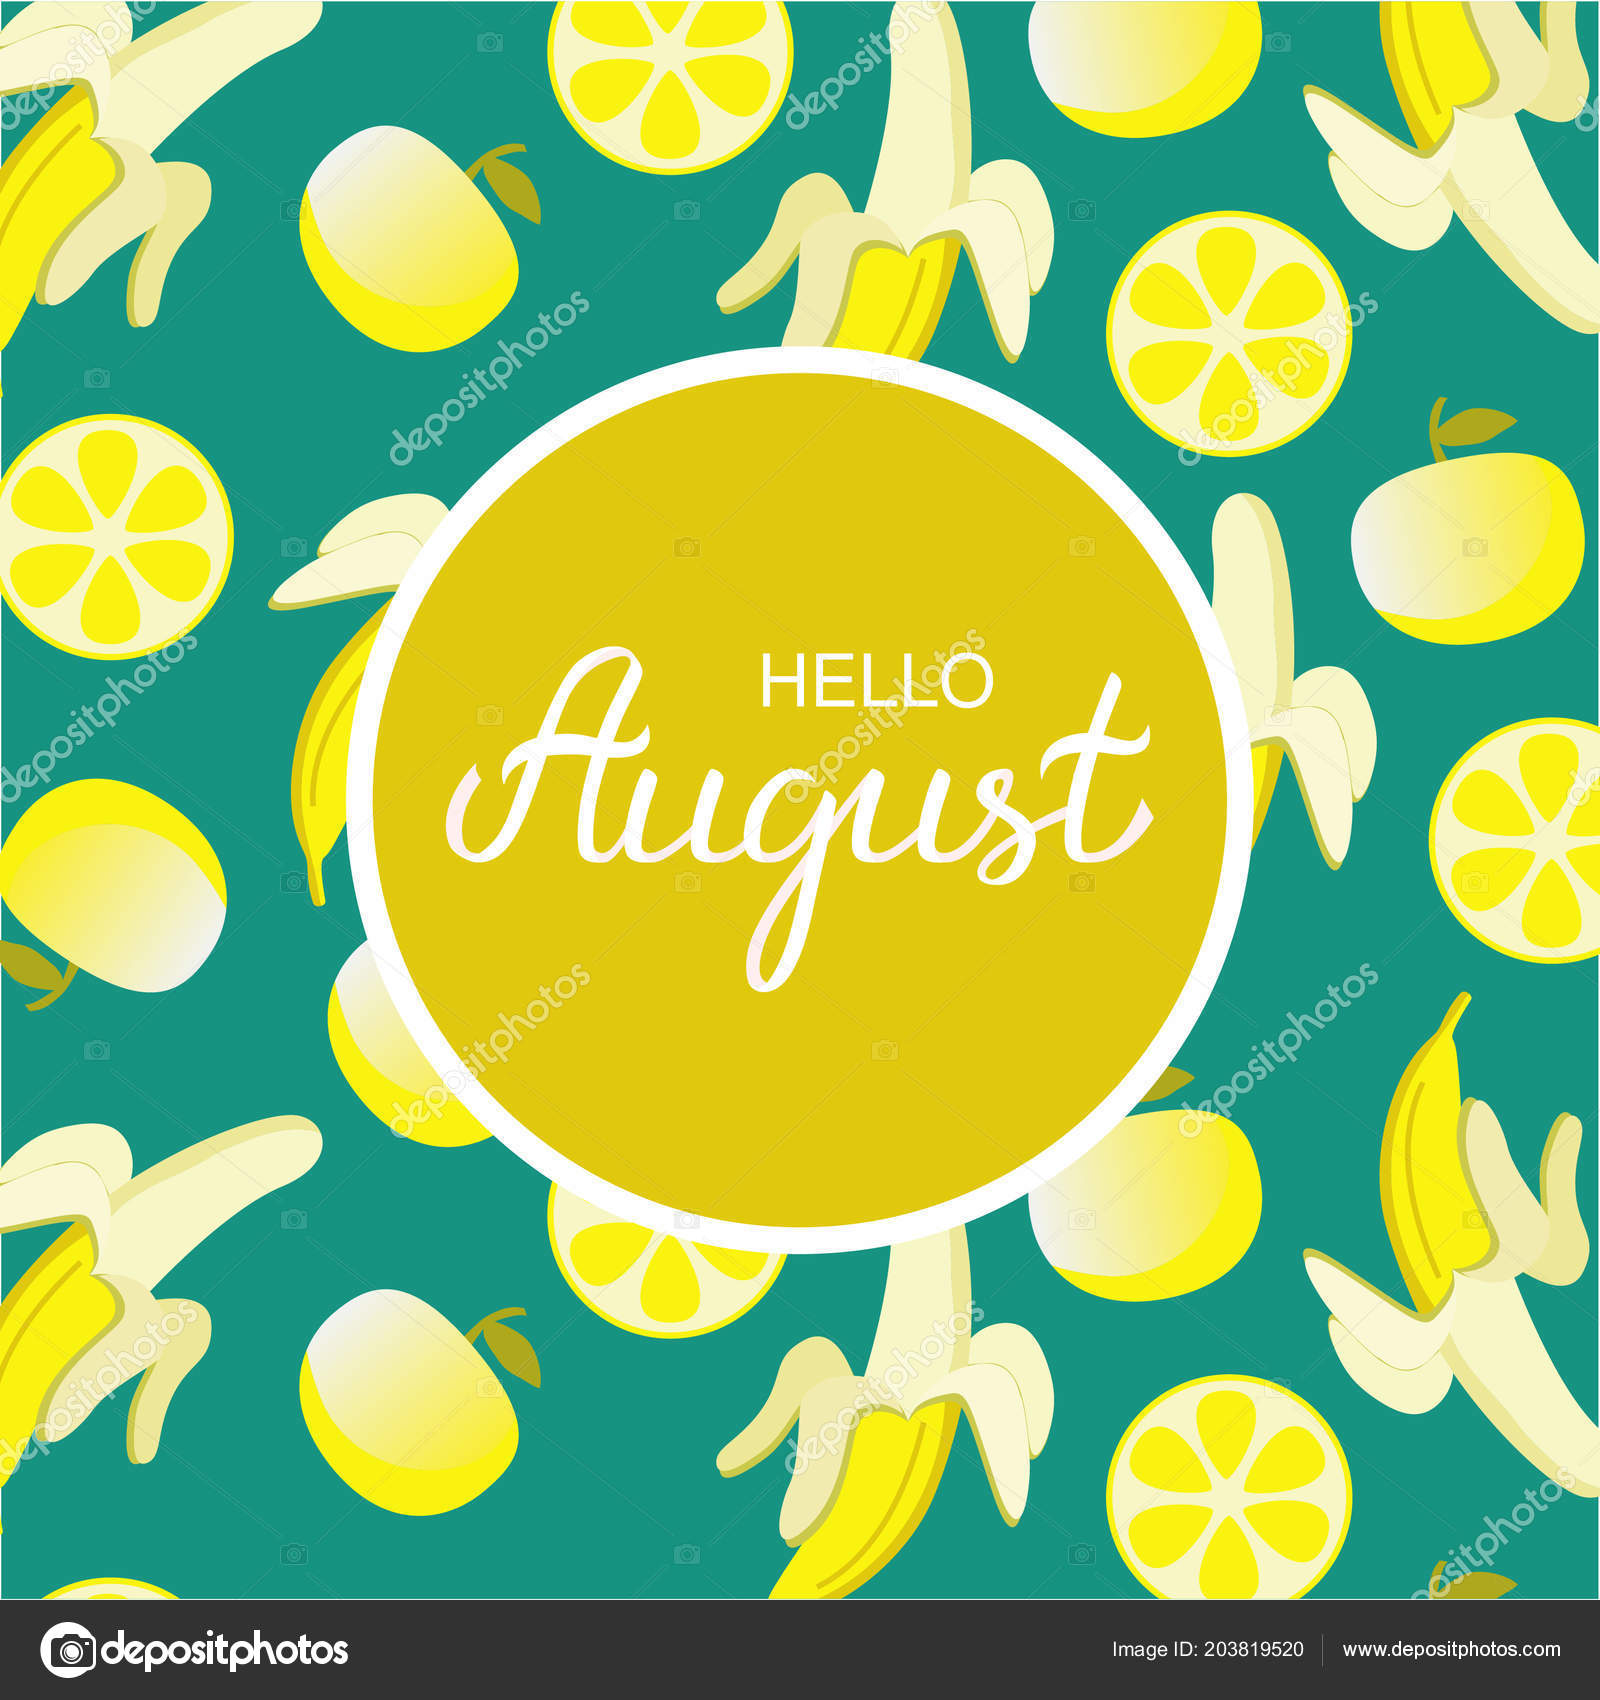 Hand Drawn Hello August Typography Lettering Poster, Bright Design  Background. Summer Time Month Title Vector Illustration With Summer Day  Elements.